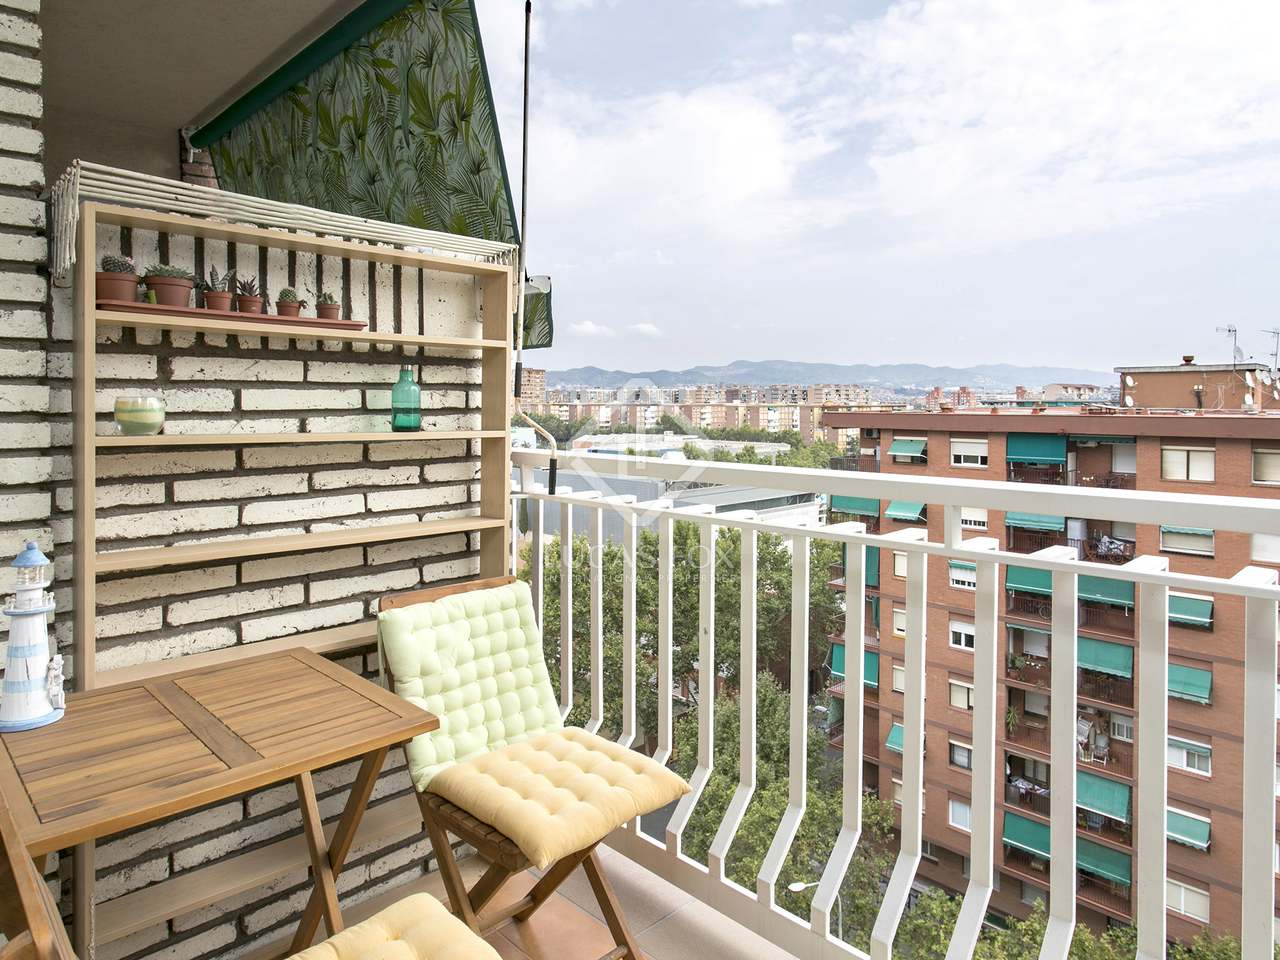 Appartement de 85m a louer diagonal mar barcelone for Appartement a louer a barcelone avec piscine